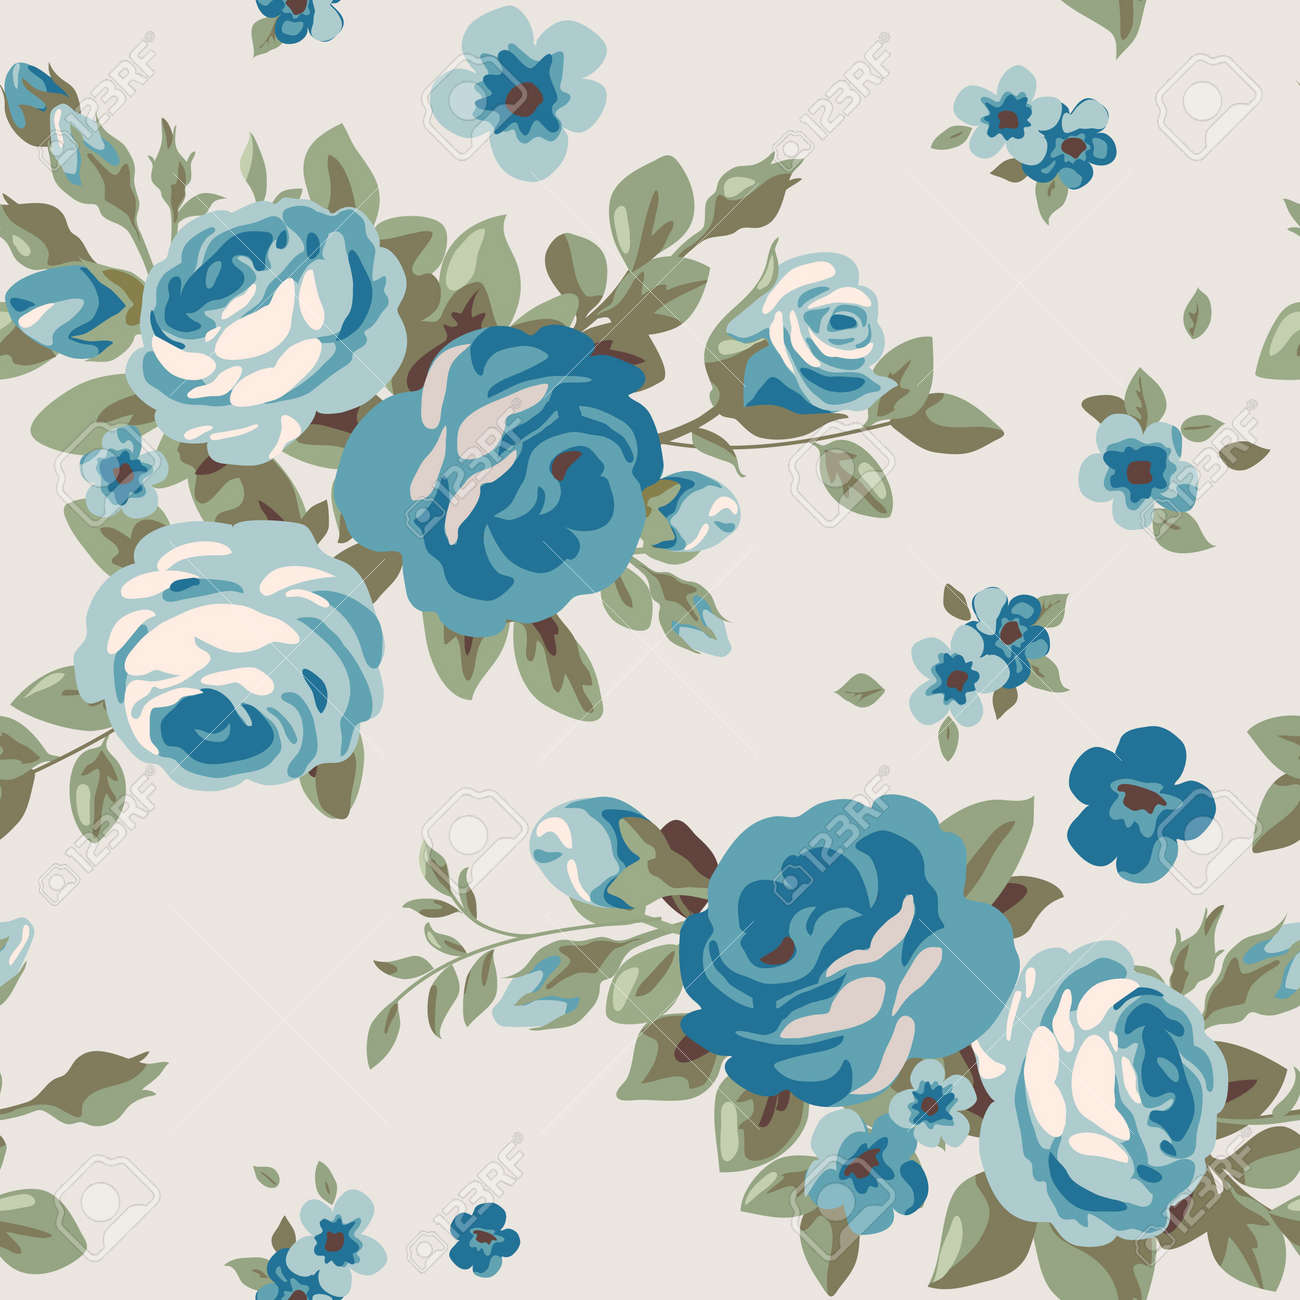 Seamless Pattern With Blue Flowers Vintage Floral Wallpaper Royalty Free Cliparts Vectors And Stock Illustration Image 59166455